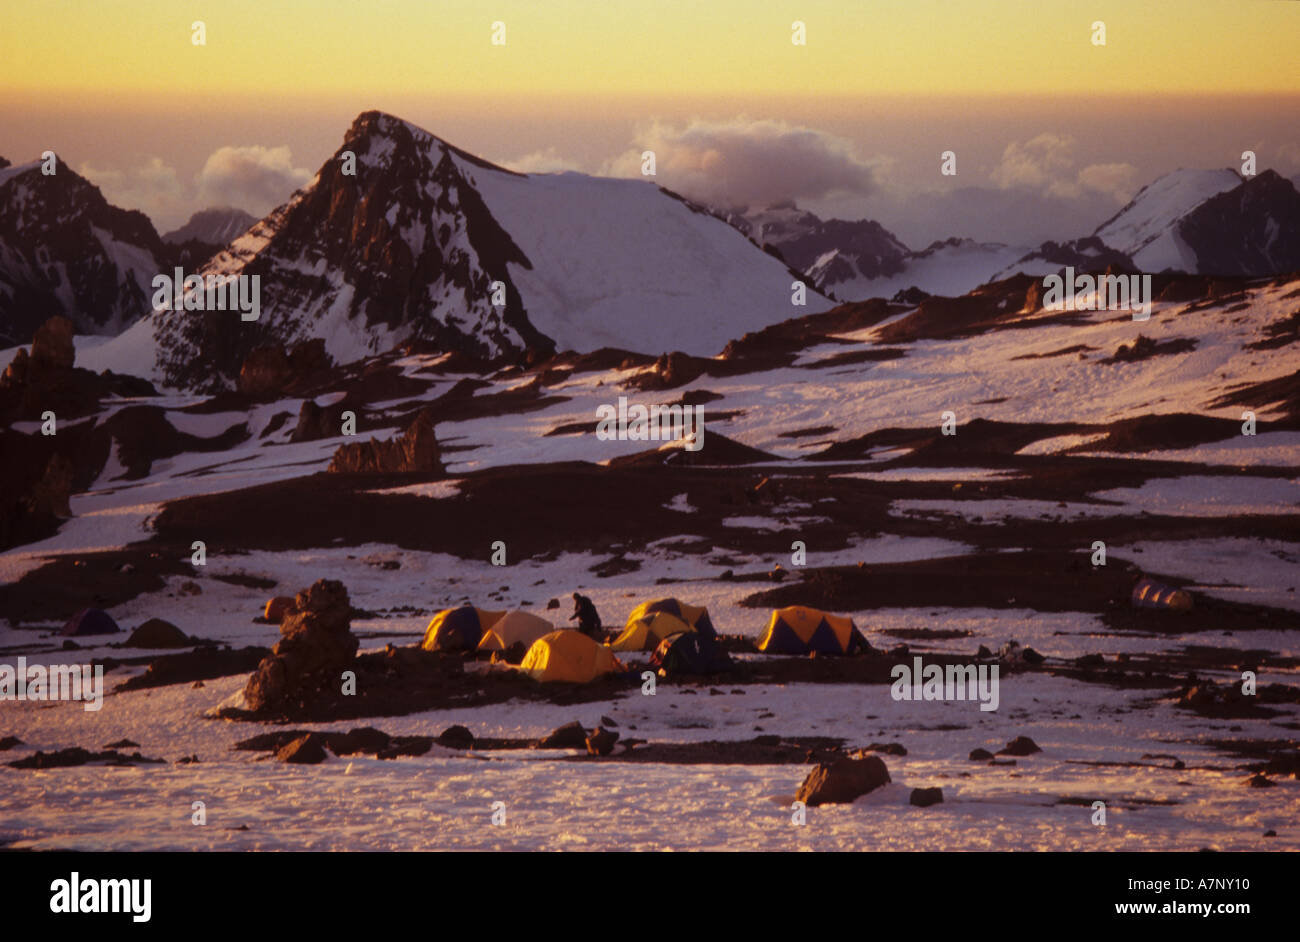 Sunset on camp at Nido de Condores, 5570 metres up Mount Aconcagua in Argentina Stock Photo